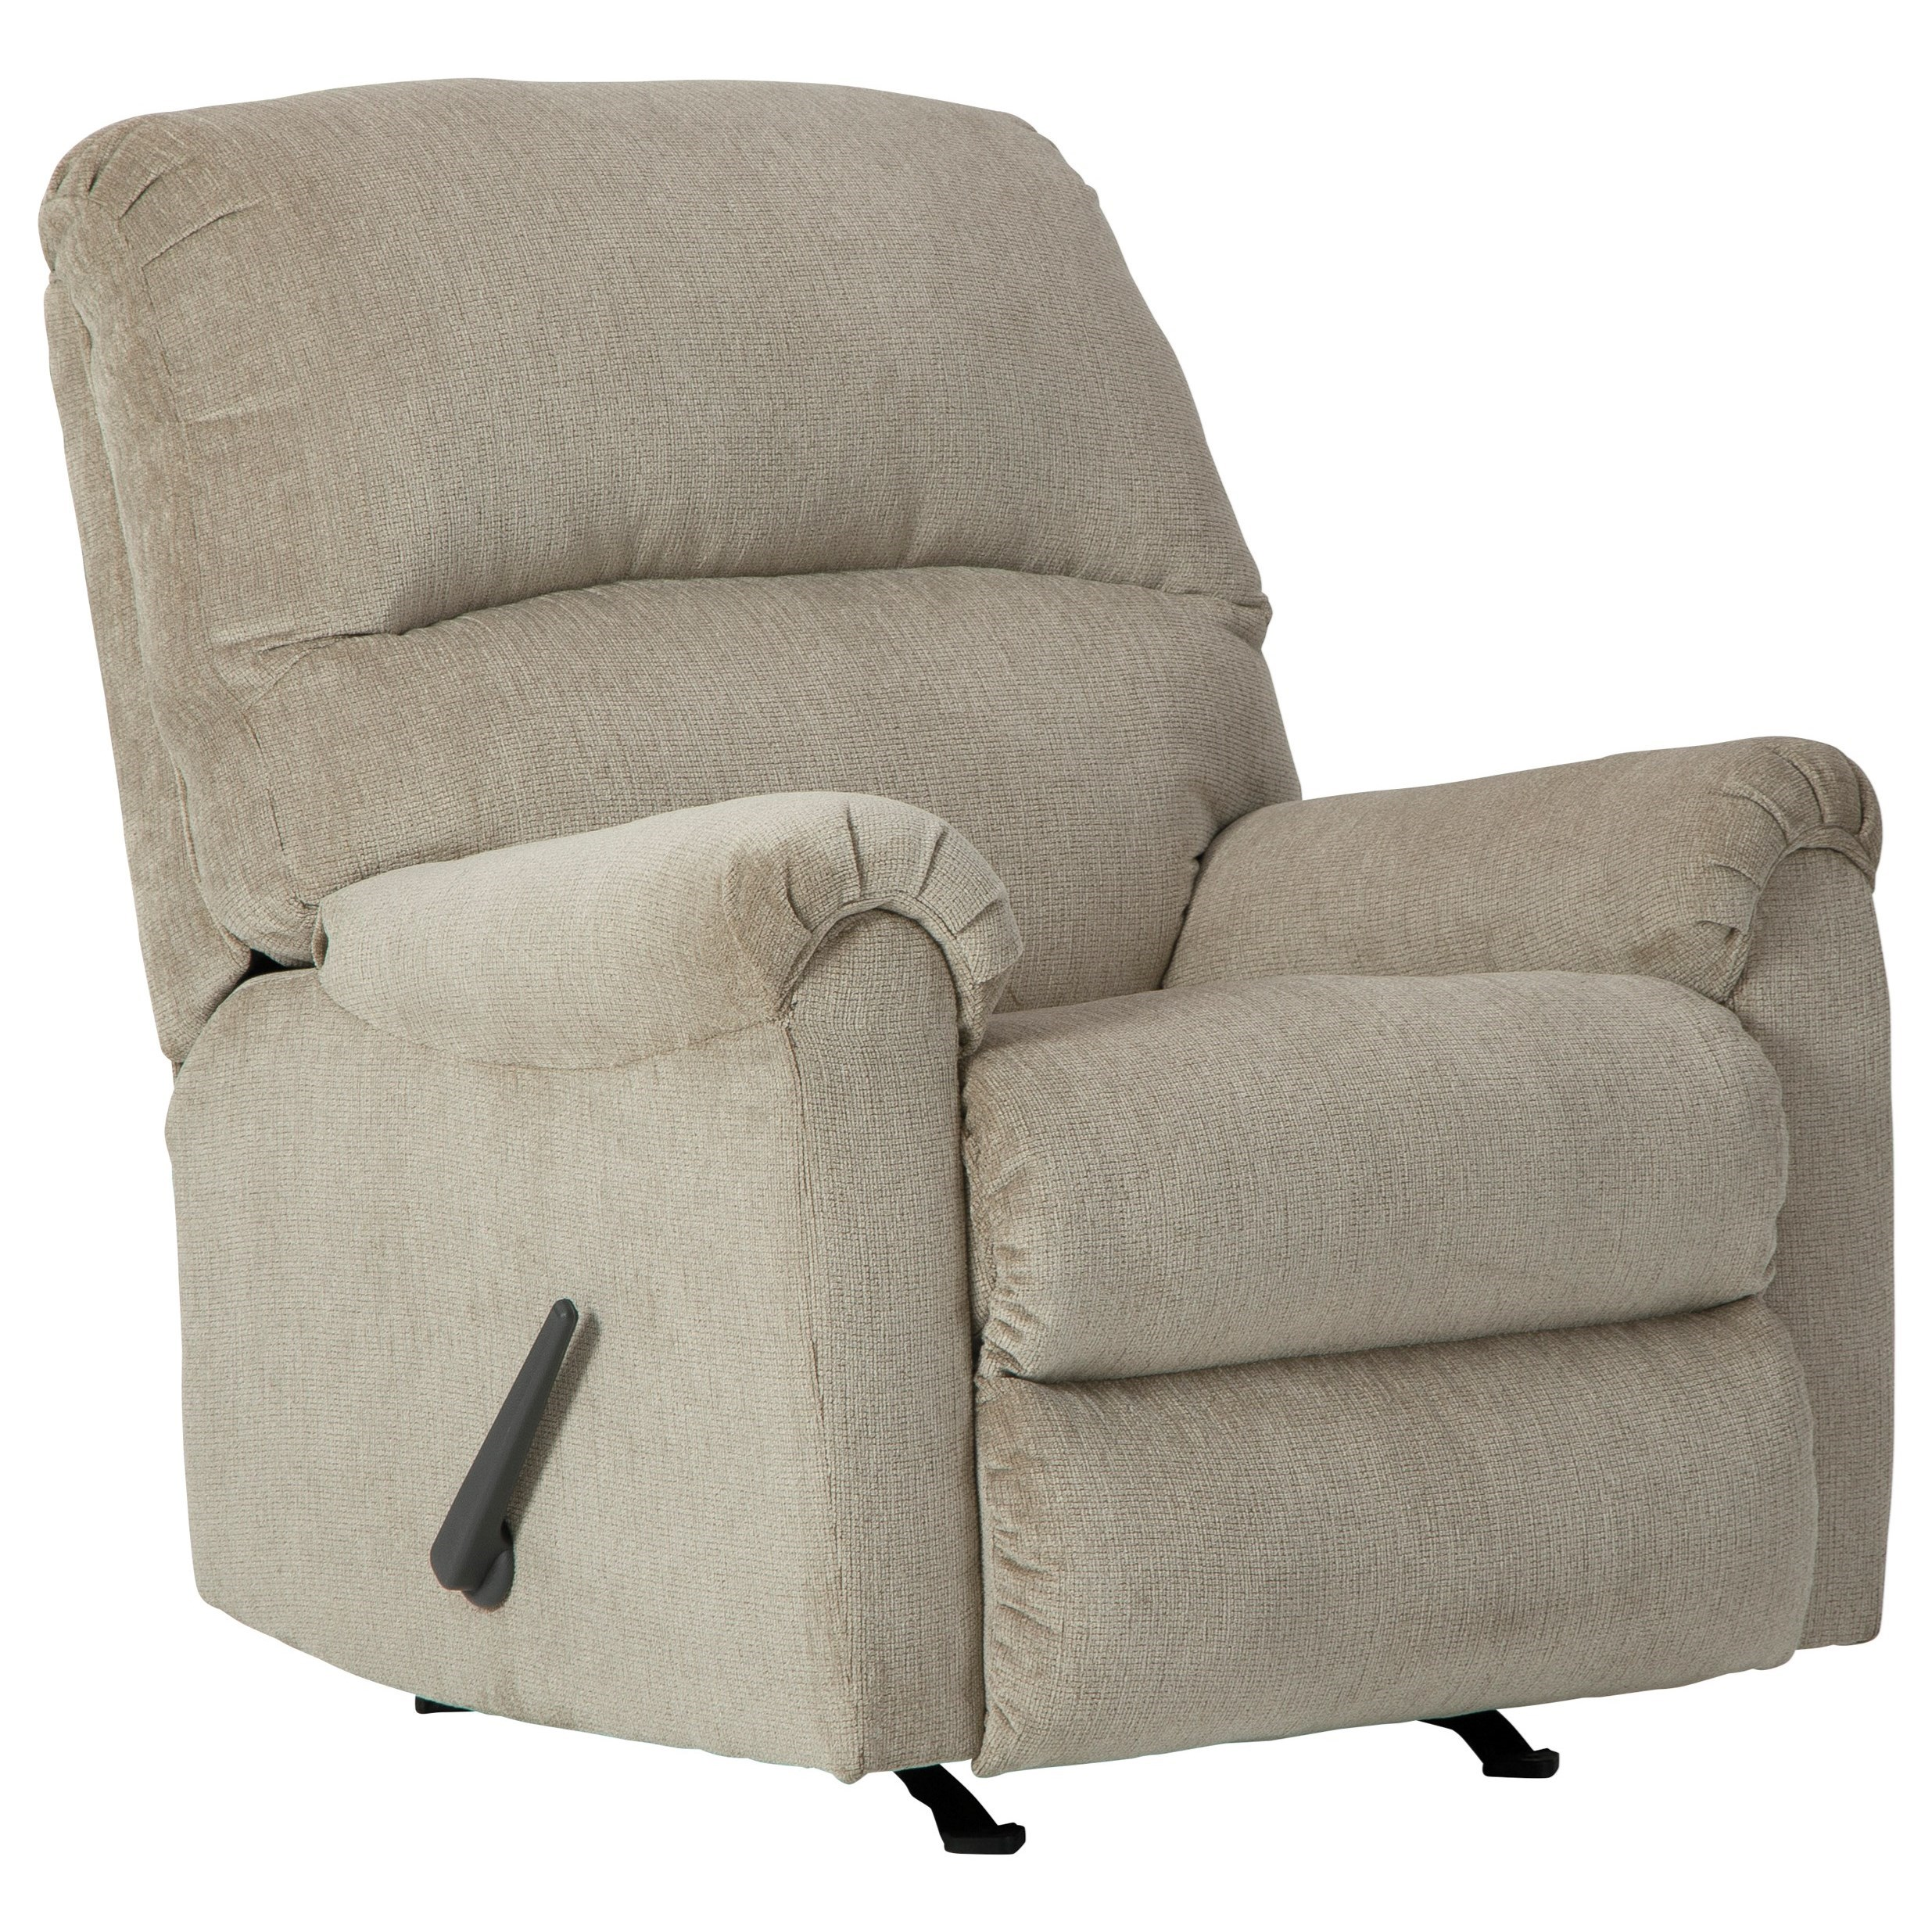 Dorsten Rocker Recliner by Ashley (Signature Design) at Johnny Janosik